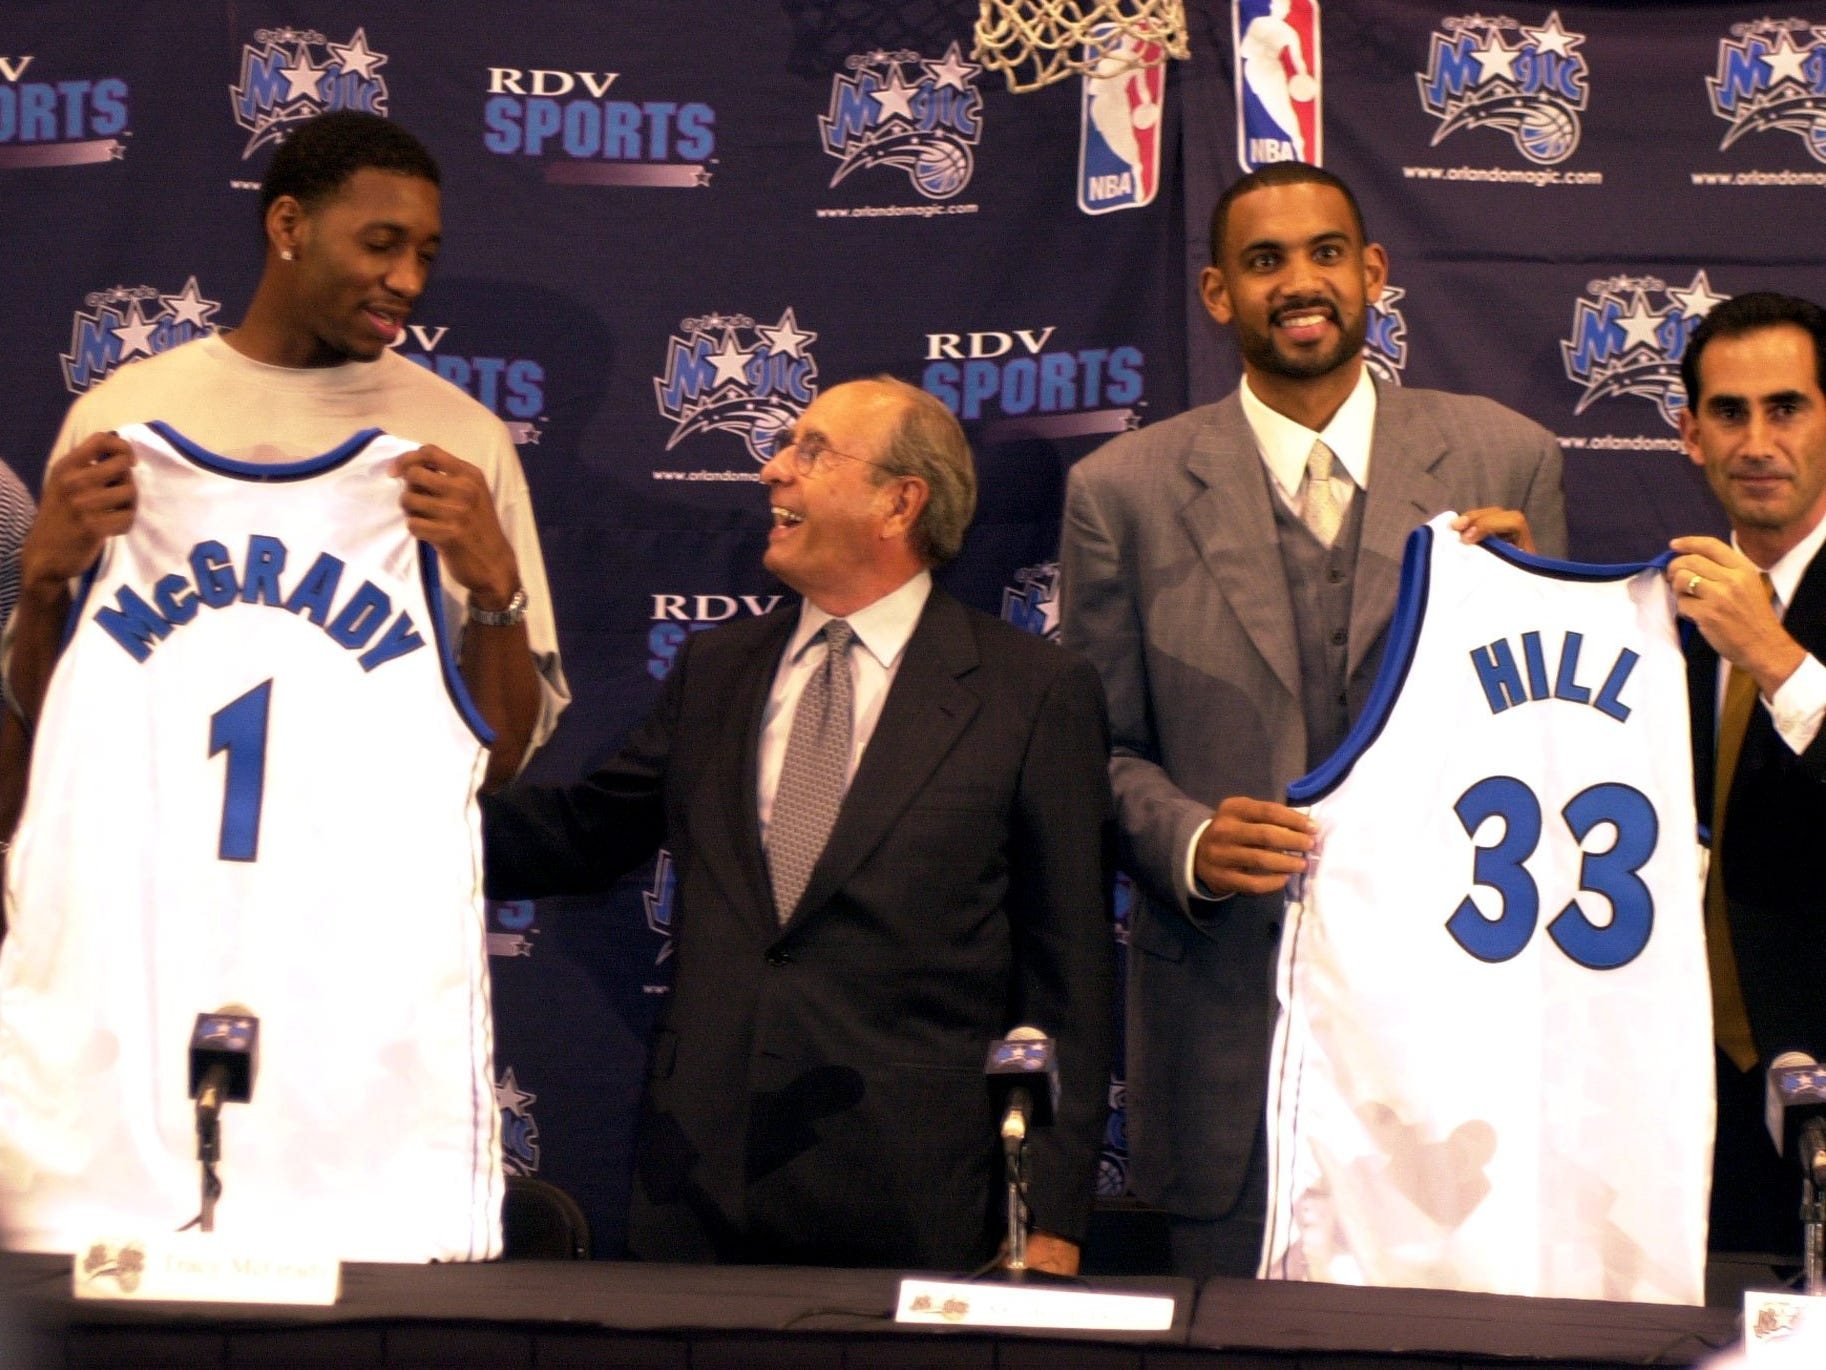 NBA stars Tracy McGrady, second from left, and Grant Hill, second from right, proudly display their new jerseys as the Orlando Magic celebrated their signings in a news conference in 1999. Standing with the new players are: Magic coach Doc Rivers, far left, owner Rich DeVos, center, and general manager John Gabriel, far right.